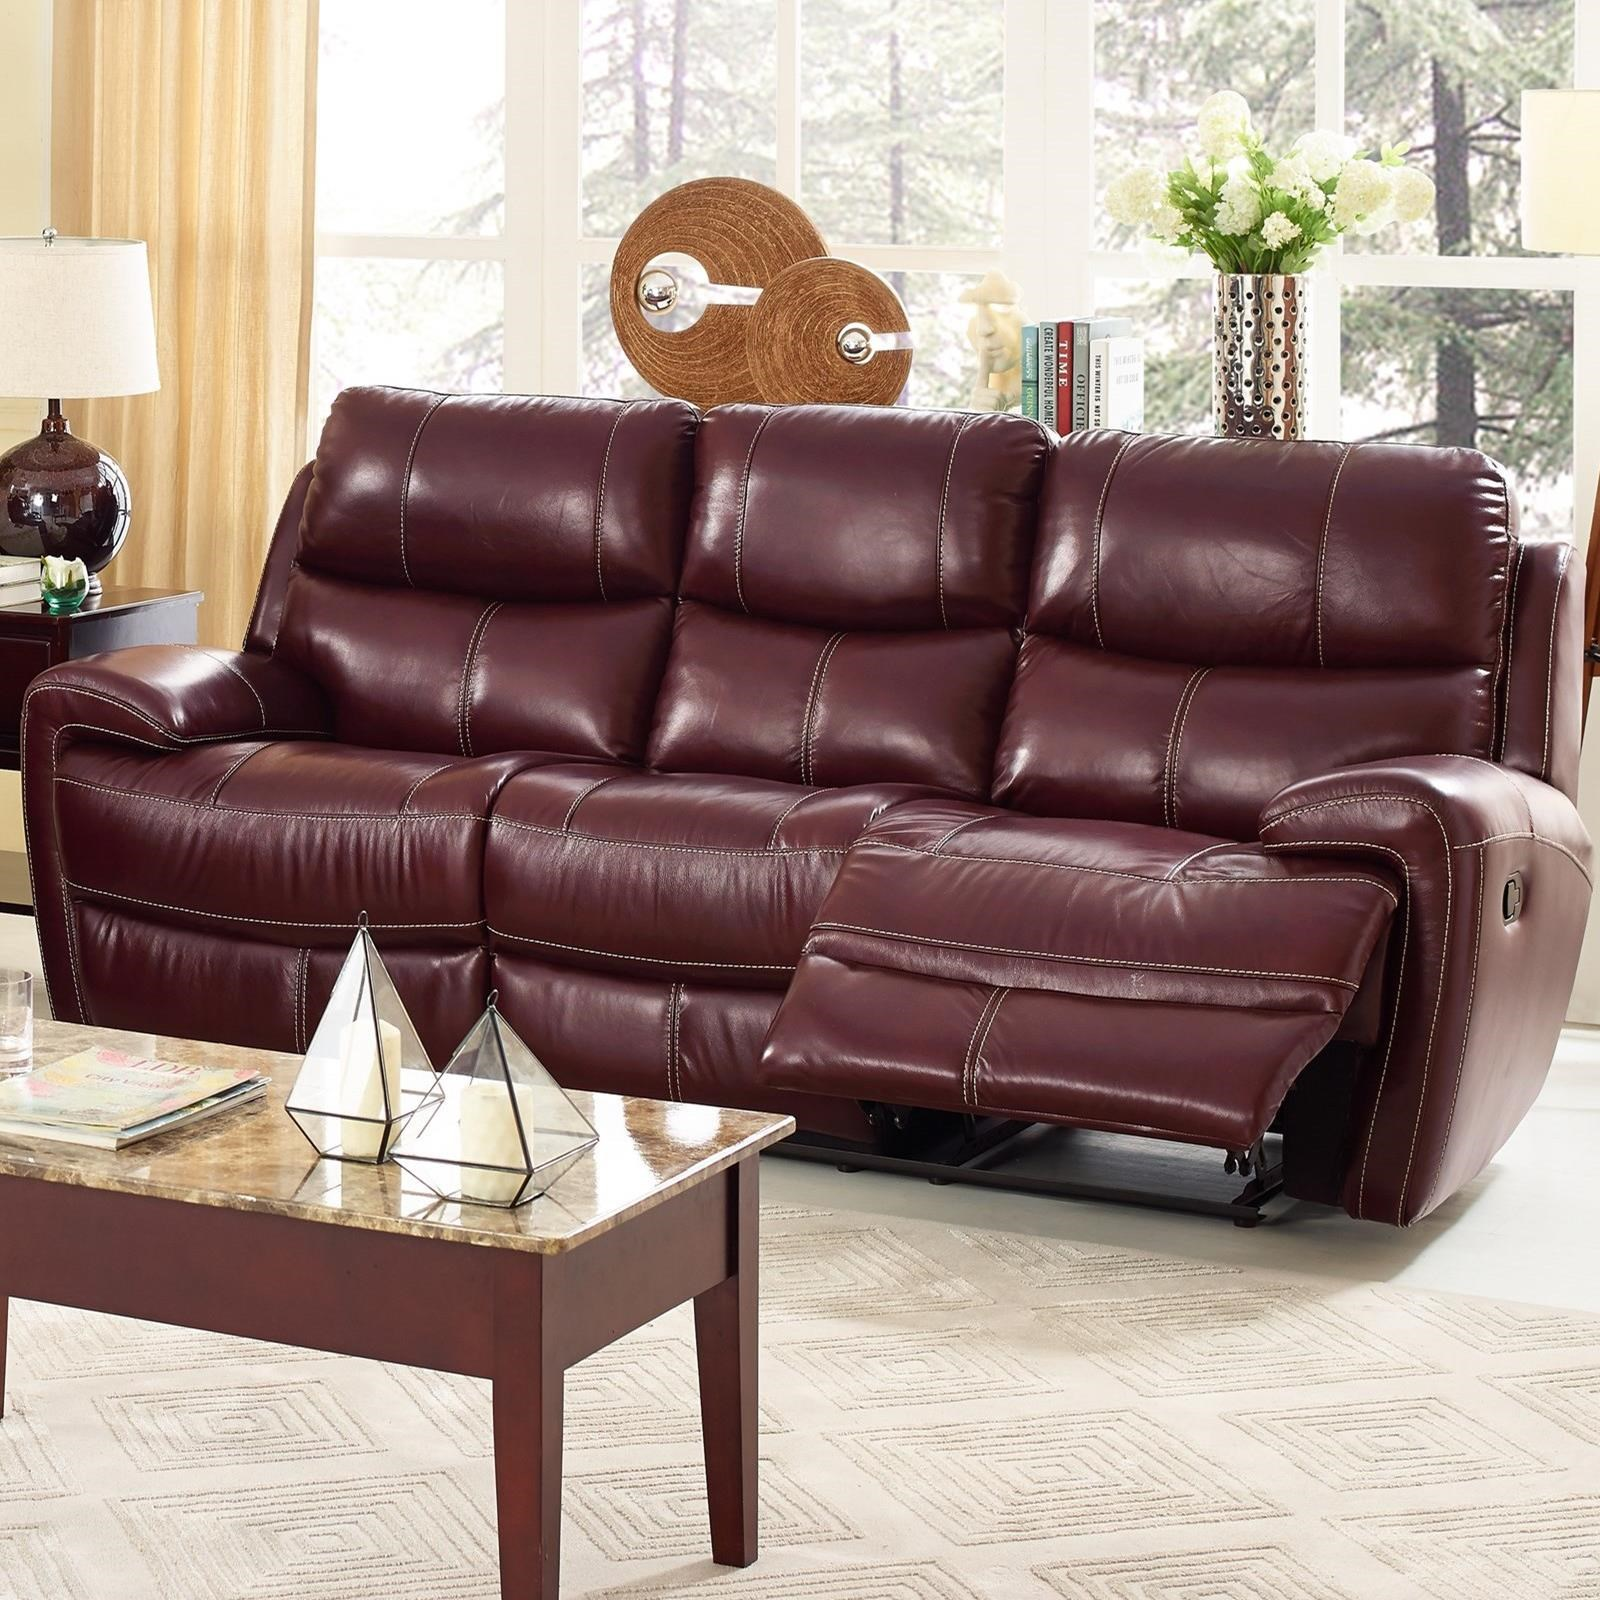 New Classic Boulevard L2233 32p Brg Casual Power Reclining Sofa With